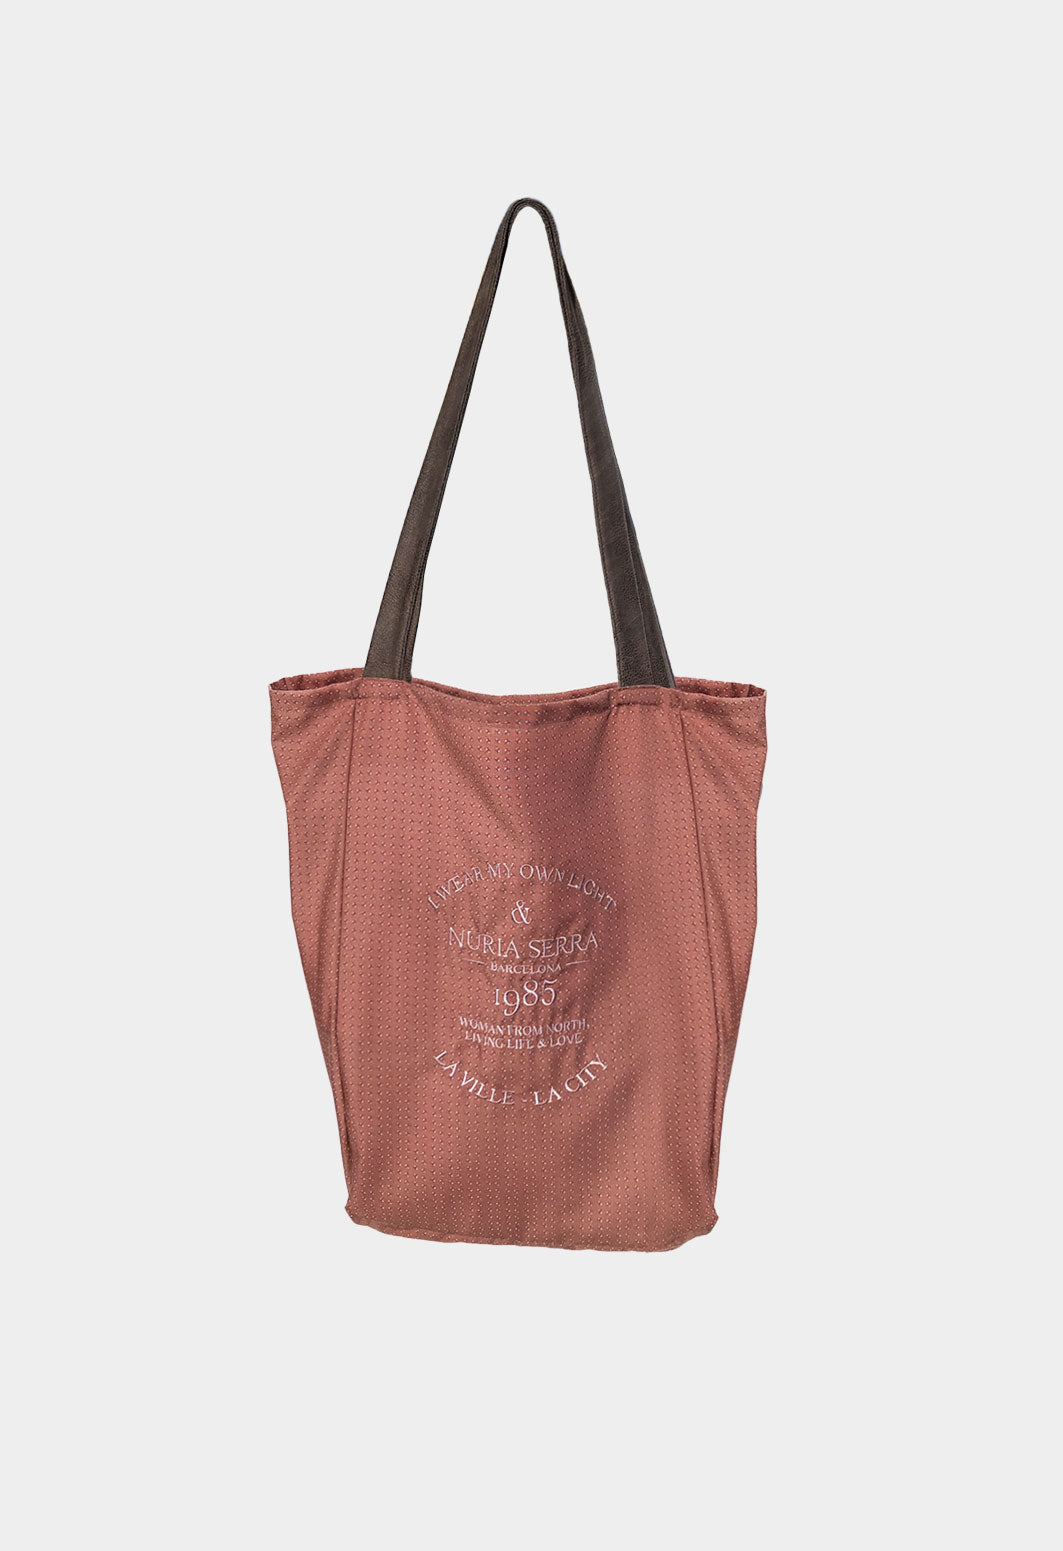 Bolso tote bag de tela rosa SHOPPER